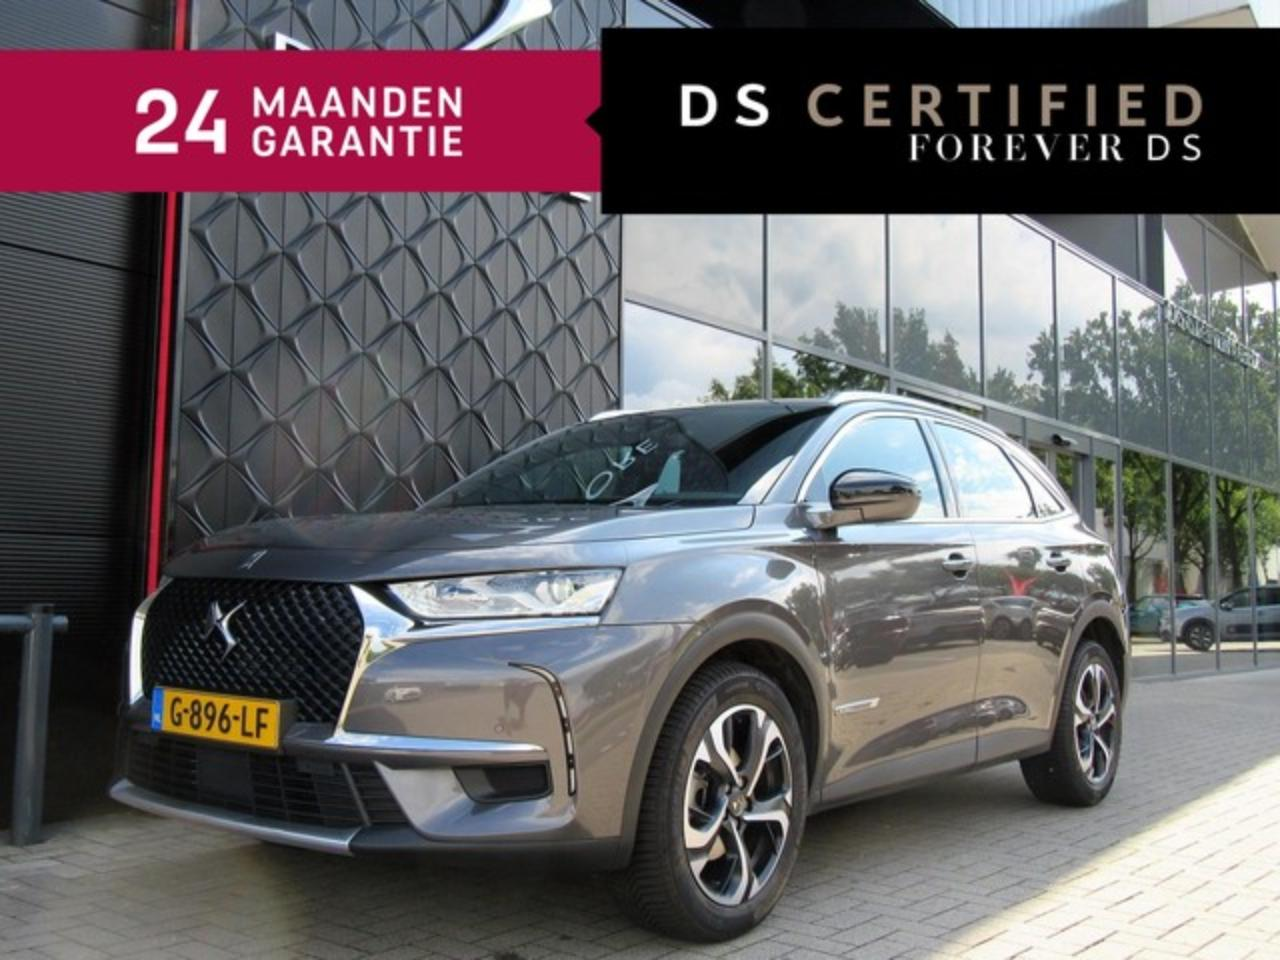 Ds DS 7 Crossback 180PK AUTOMAAT/CARPLAYNAVI + iPHONE SE/PDC V+A+CAM